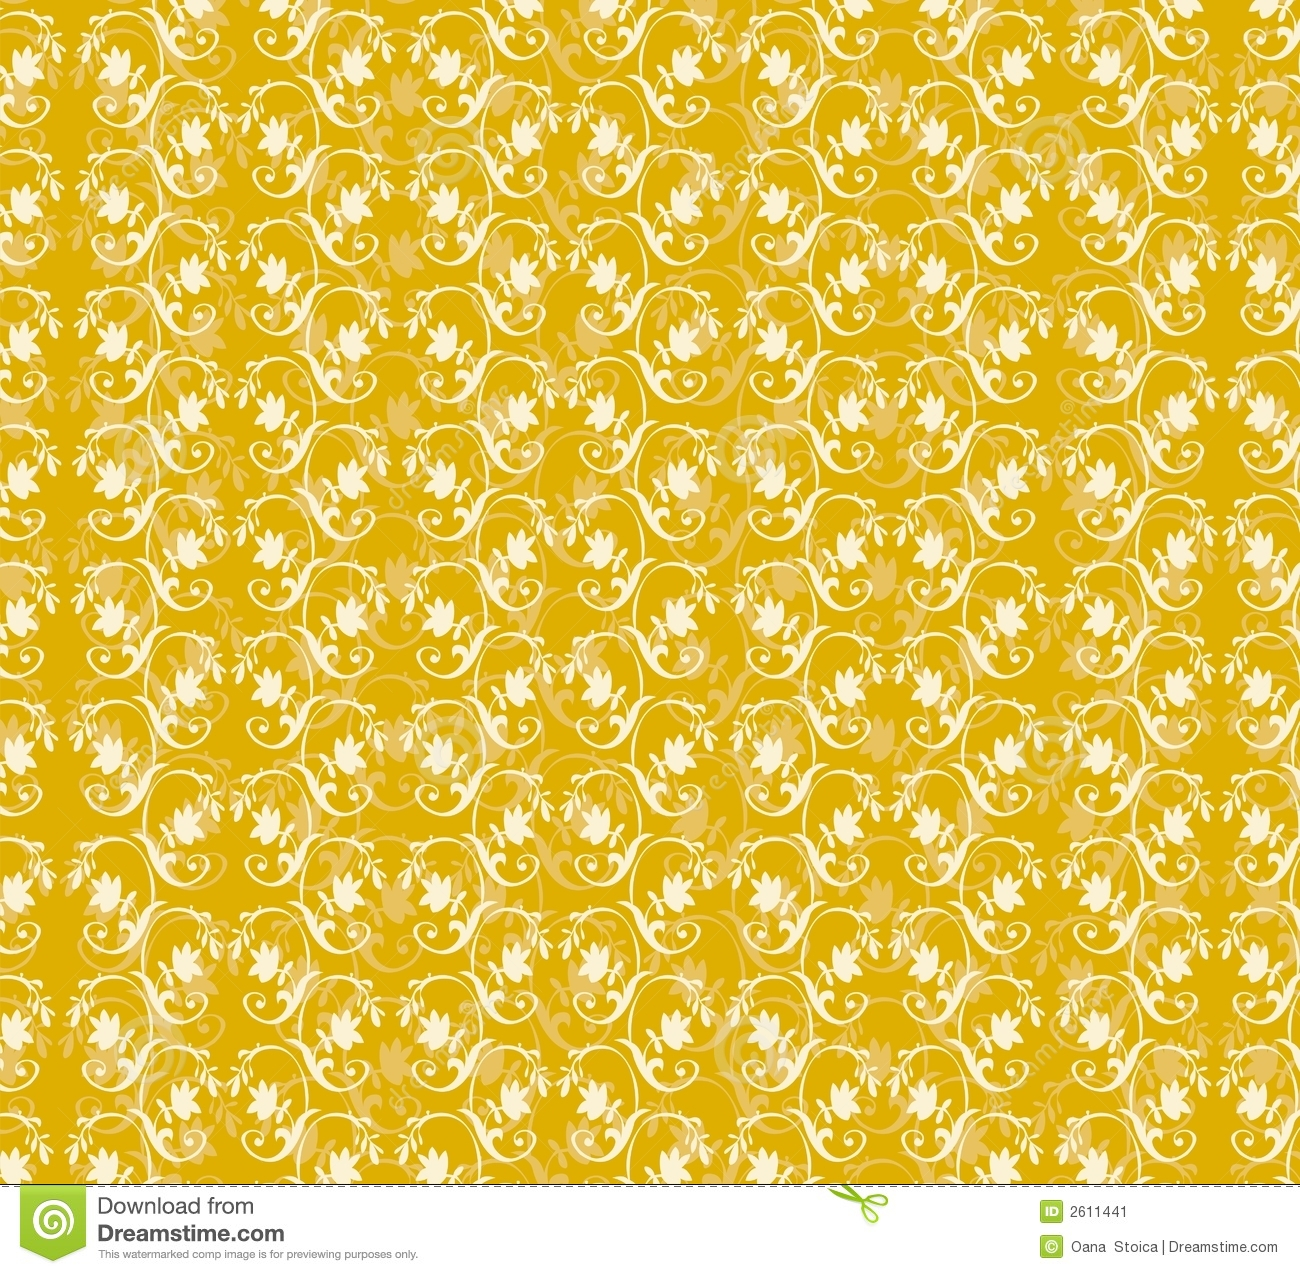 yellow floral pattern - photo #22